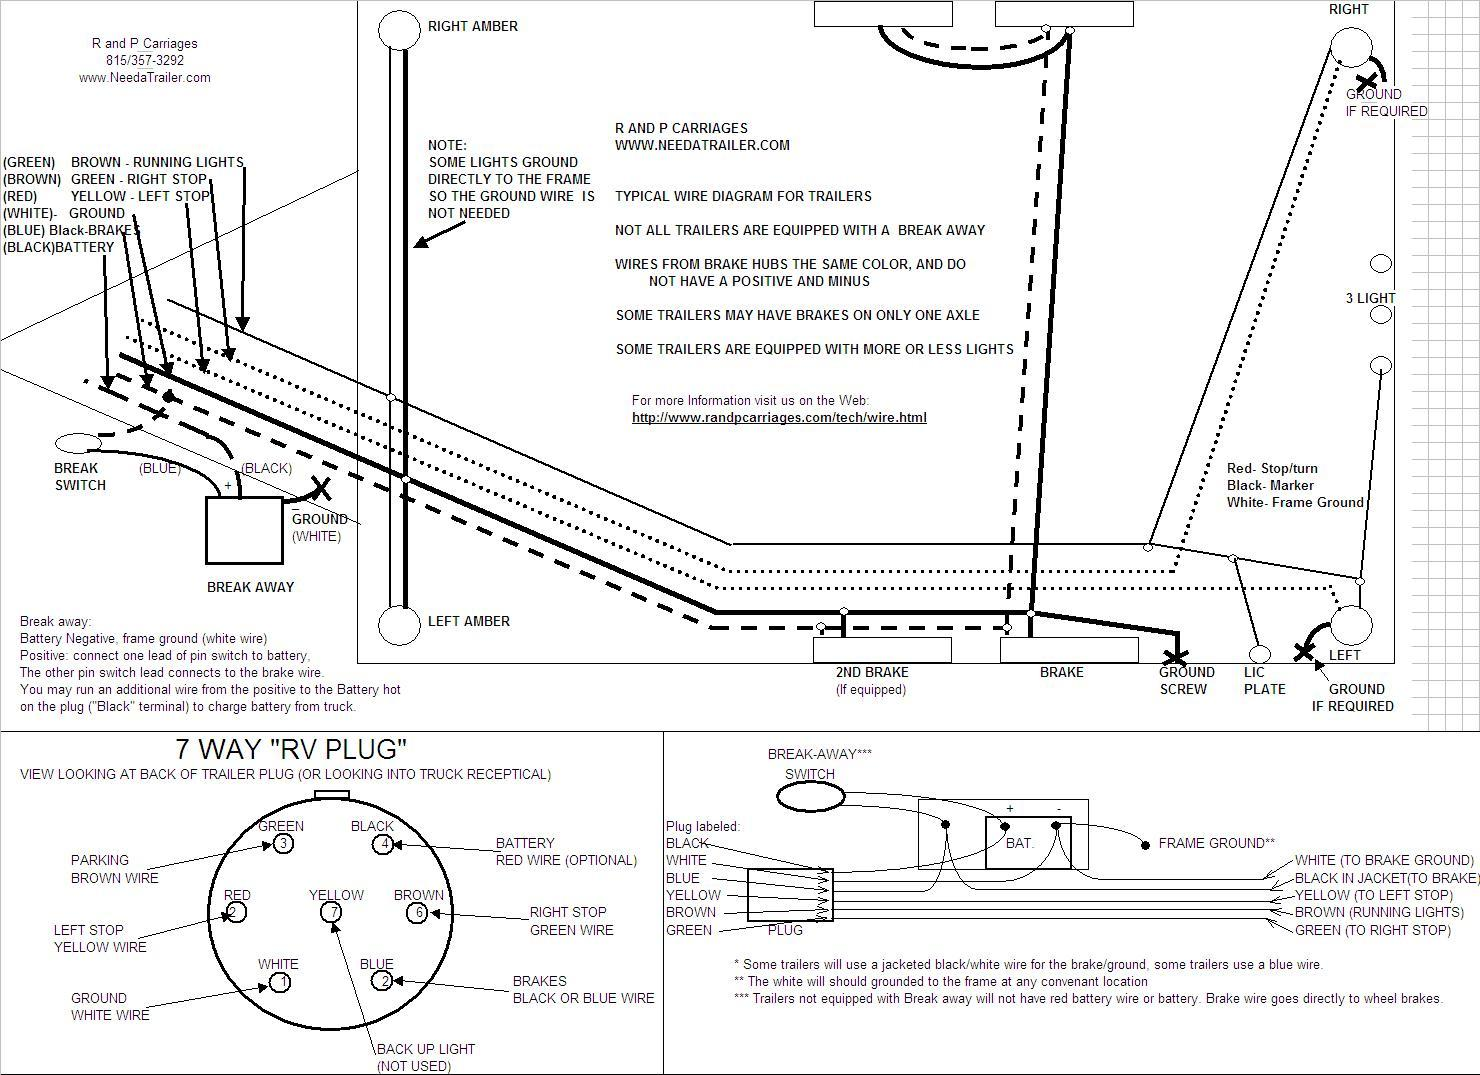 7 way wiring diagram 7 way plug wiring diagram 7 way trailer light diagram \u2022 free stock trailer wiring diagram at alyssarenee.co